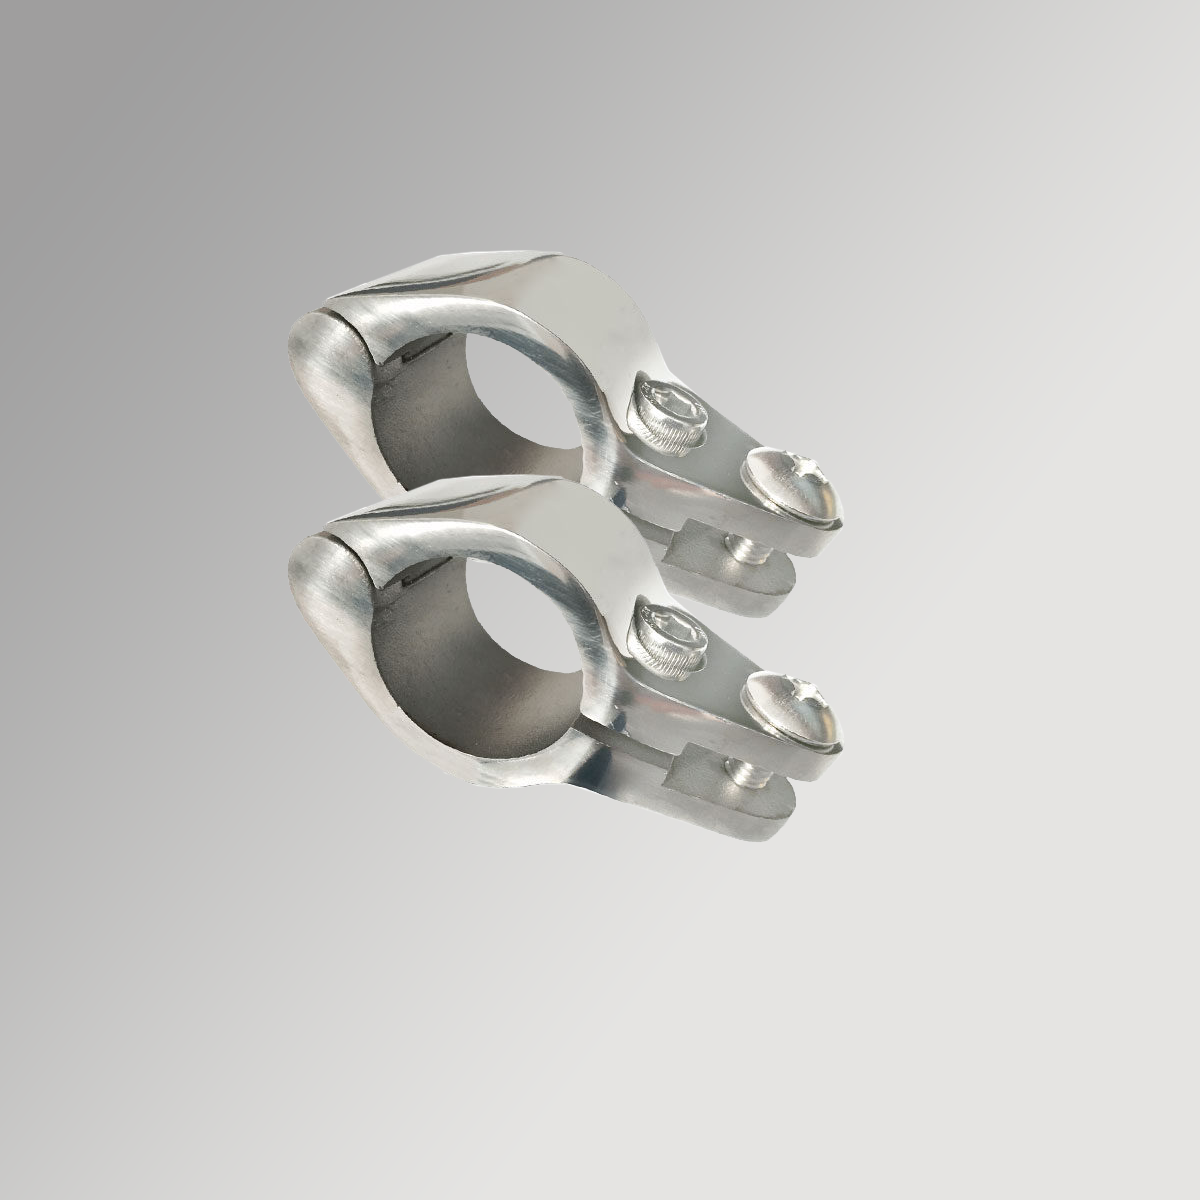 Hinged Jaw Slides 25mm x 2 - Stainless Steel